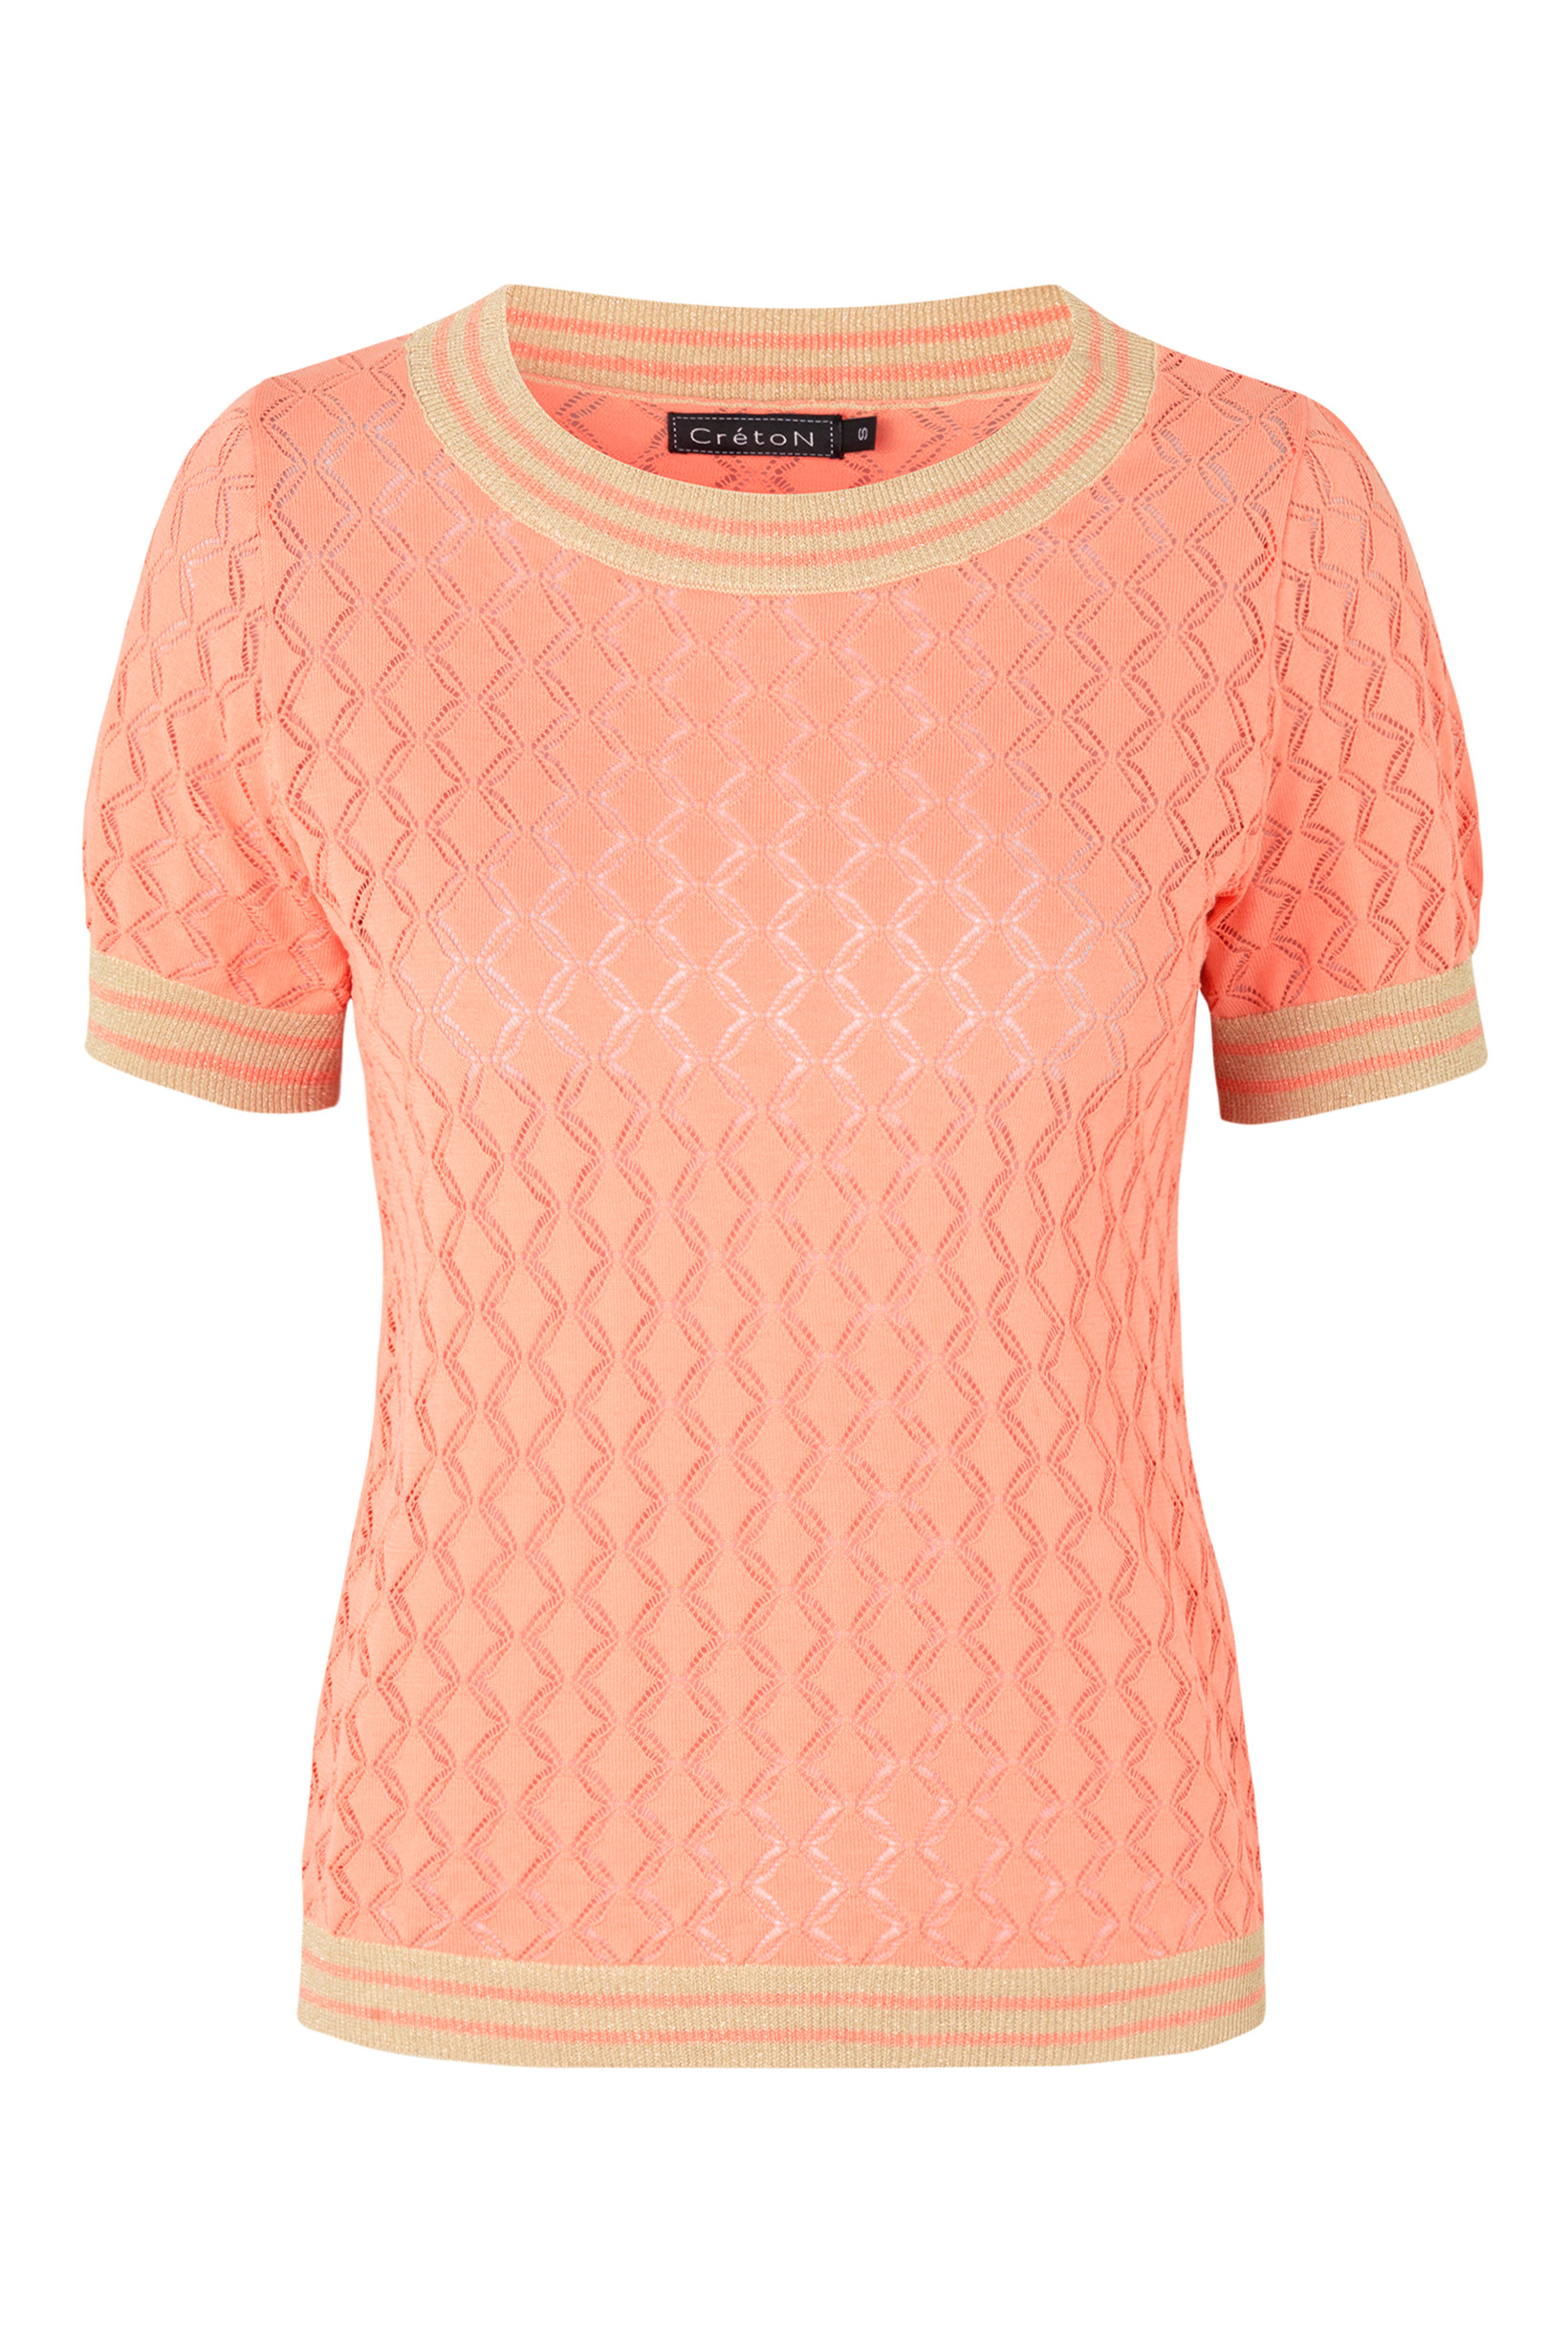 Image of   A-Ghinna Strik Top i 4 Farver - Coral